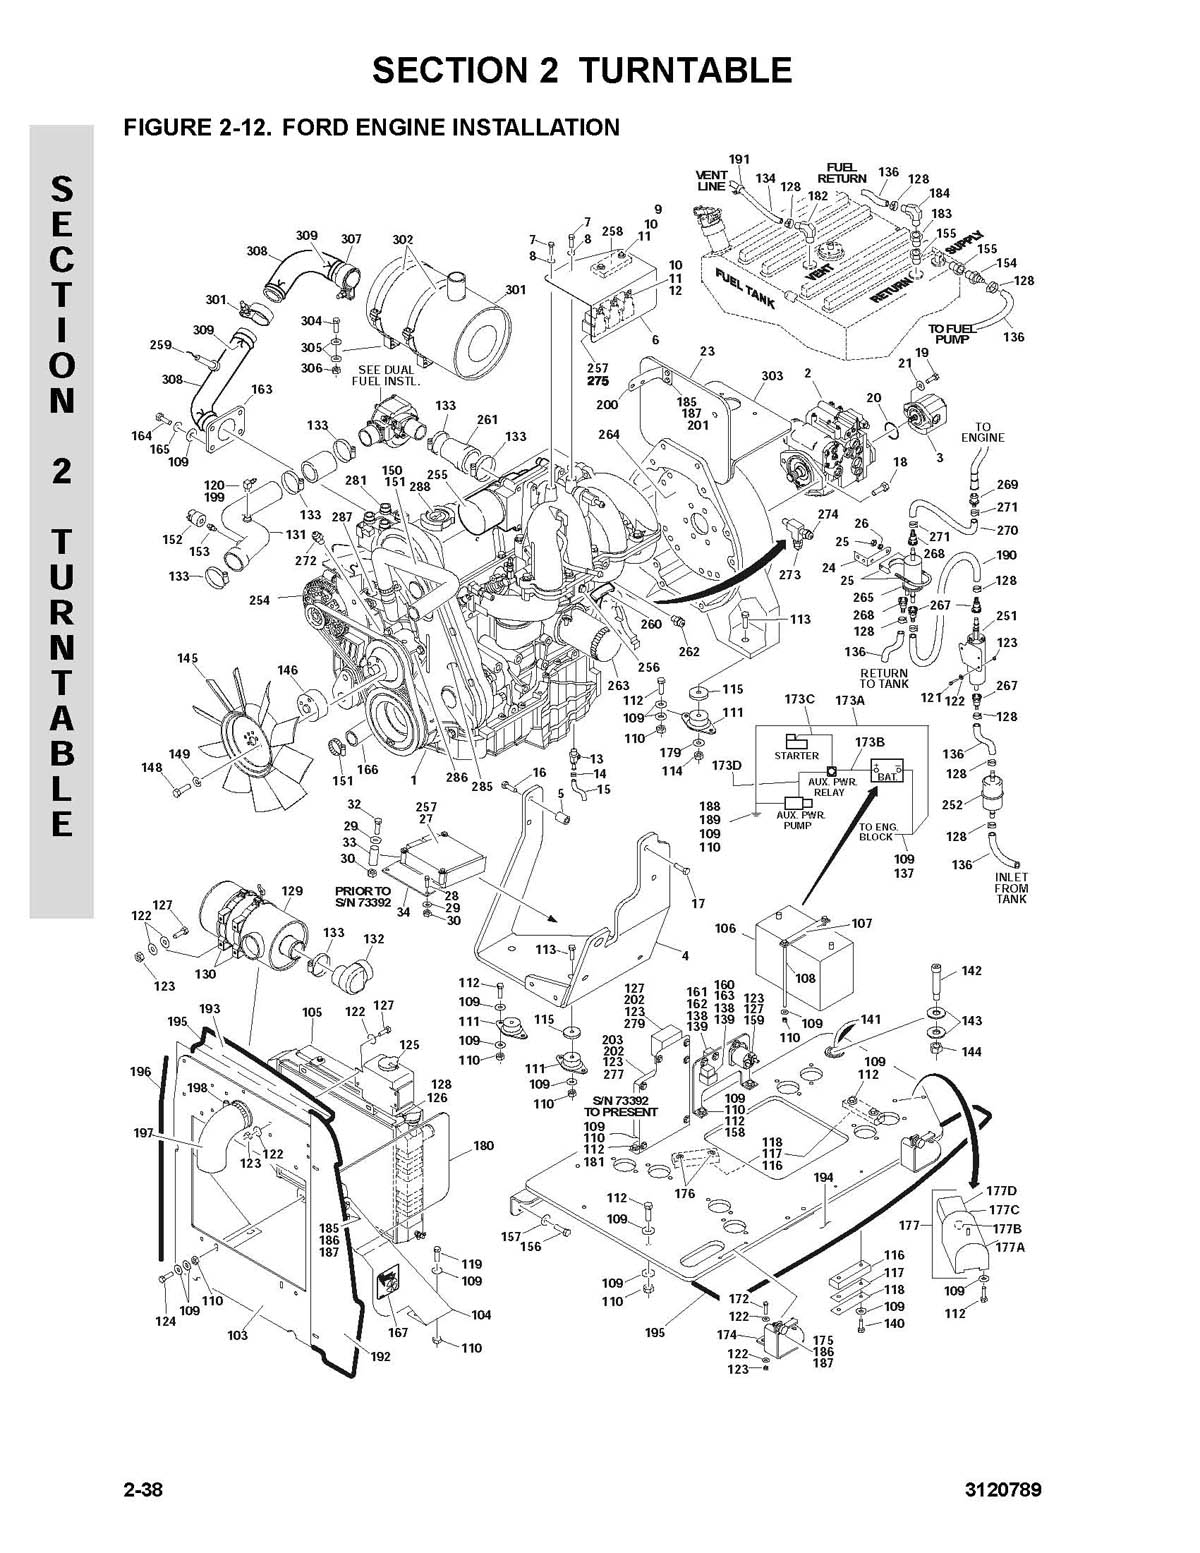 31207890238 construction equipment parts jlg parts from www gciron com sullair 185 wiring diagram at gsmx.co